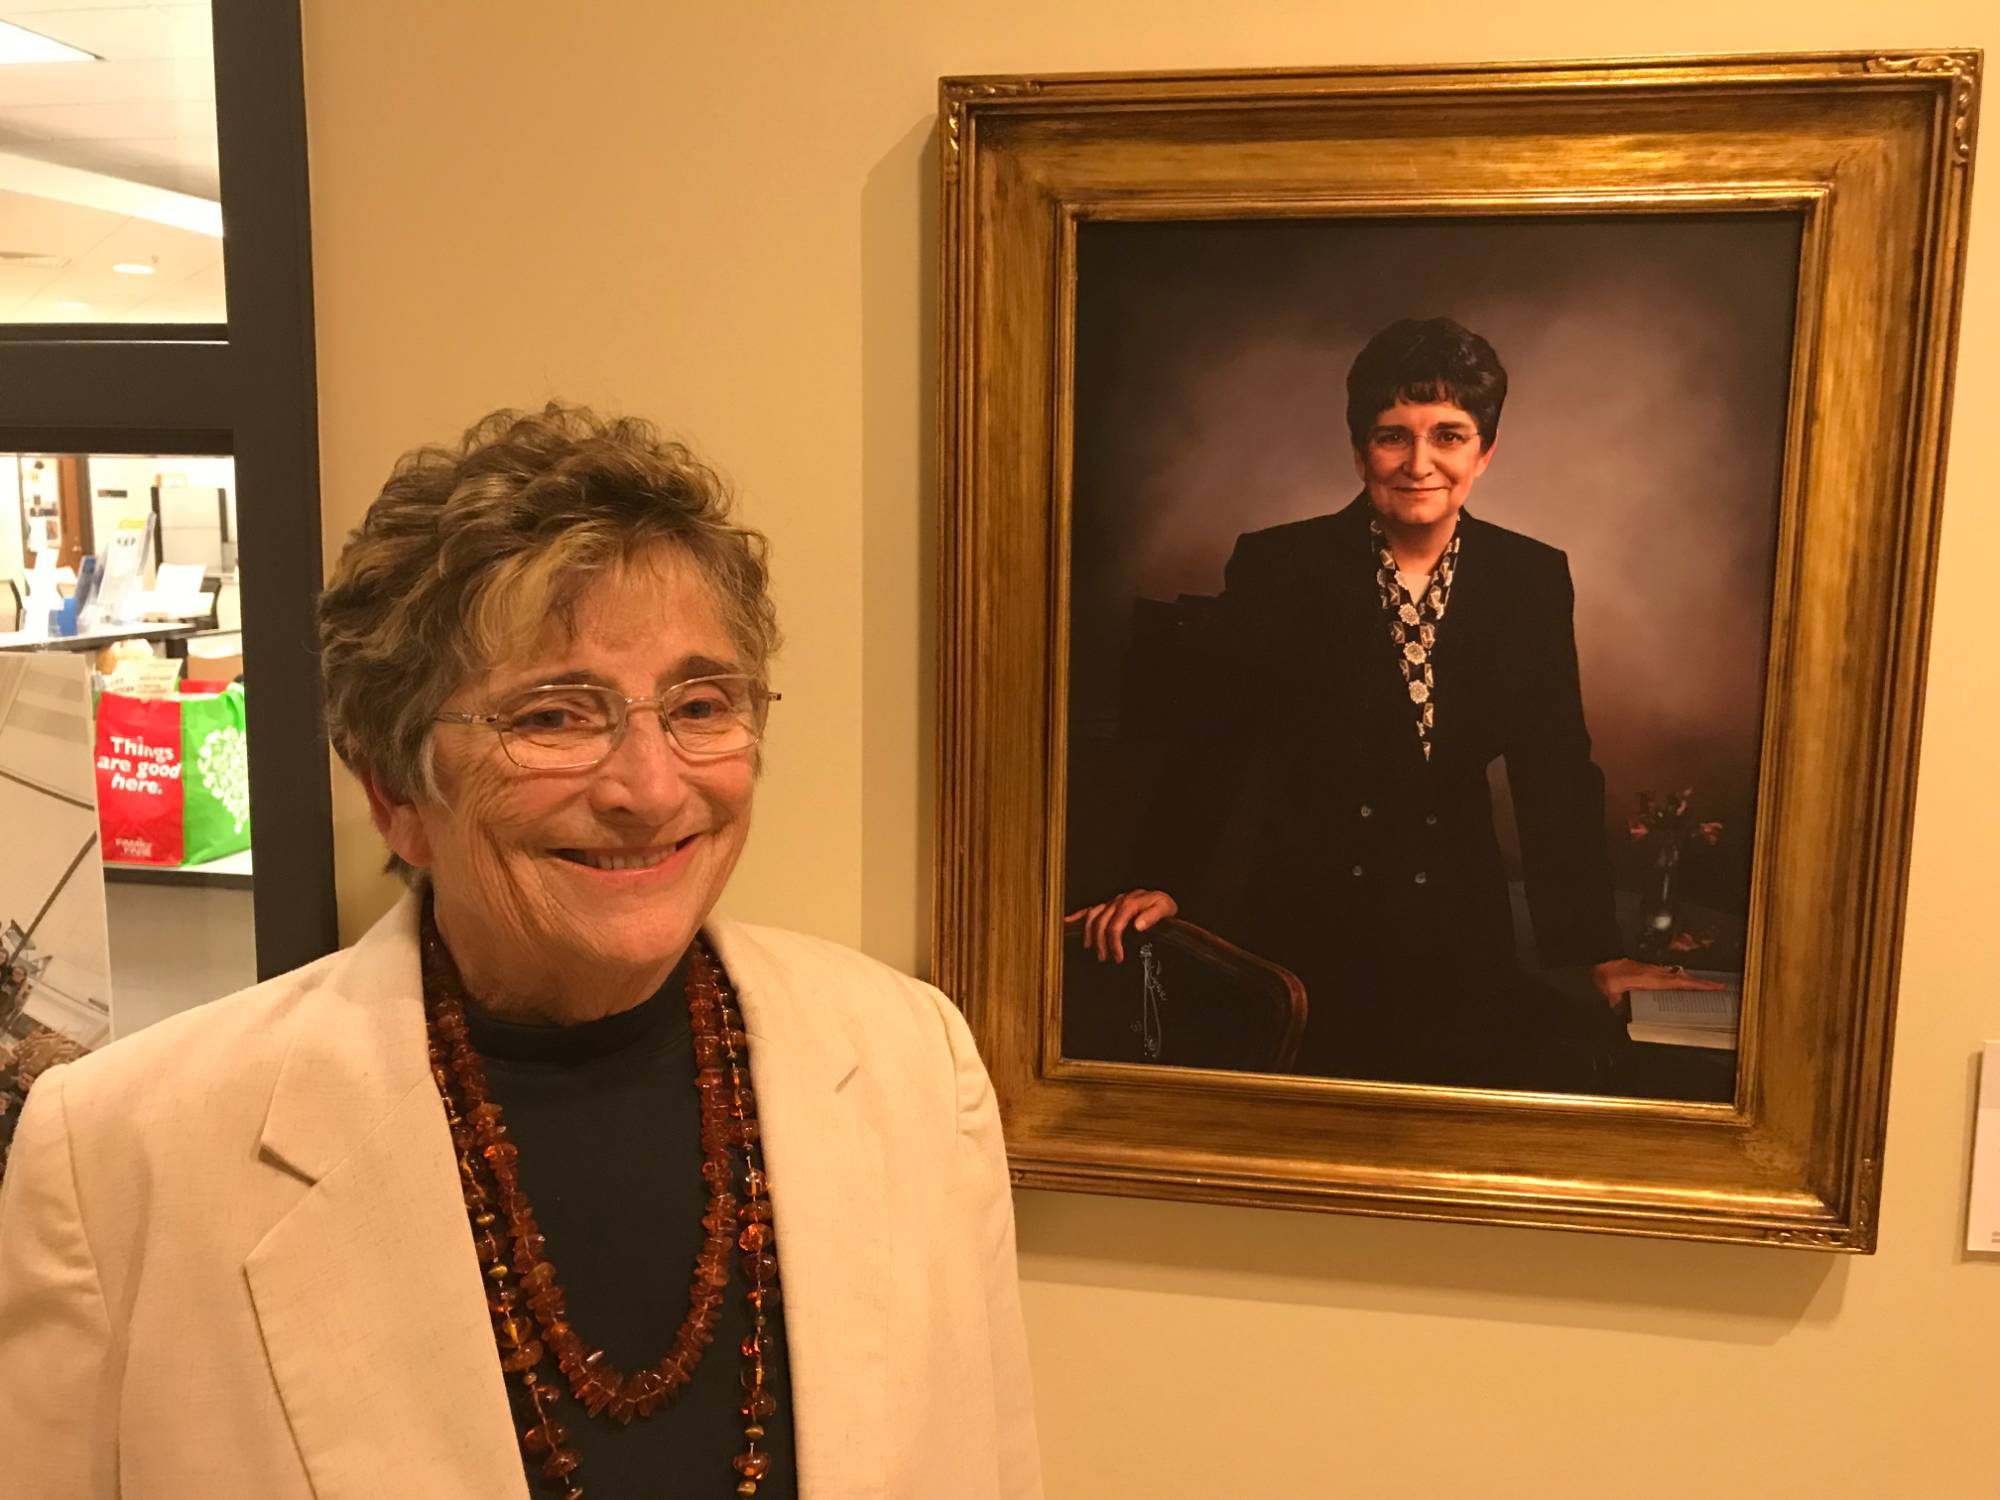 former Honors director Johnine Callahan smiling next to her hallway portrait